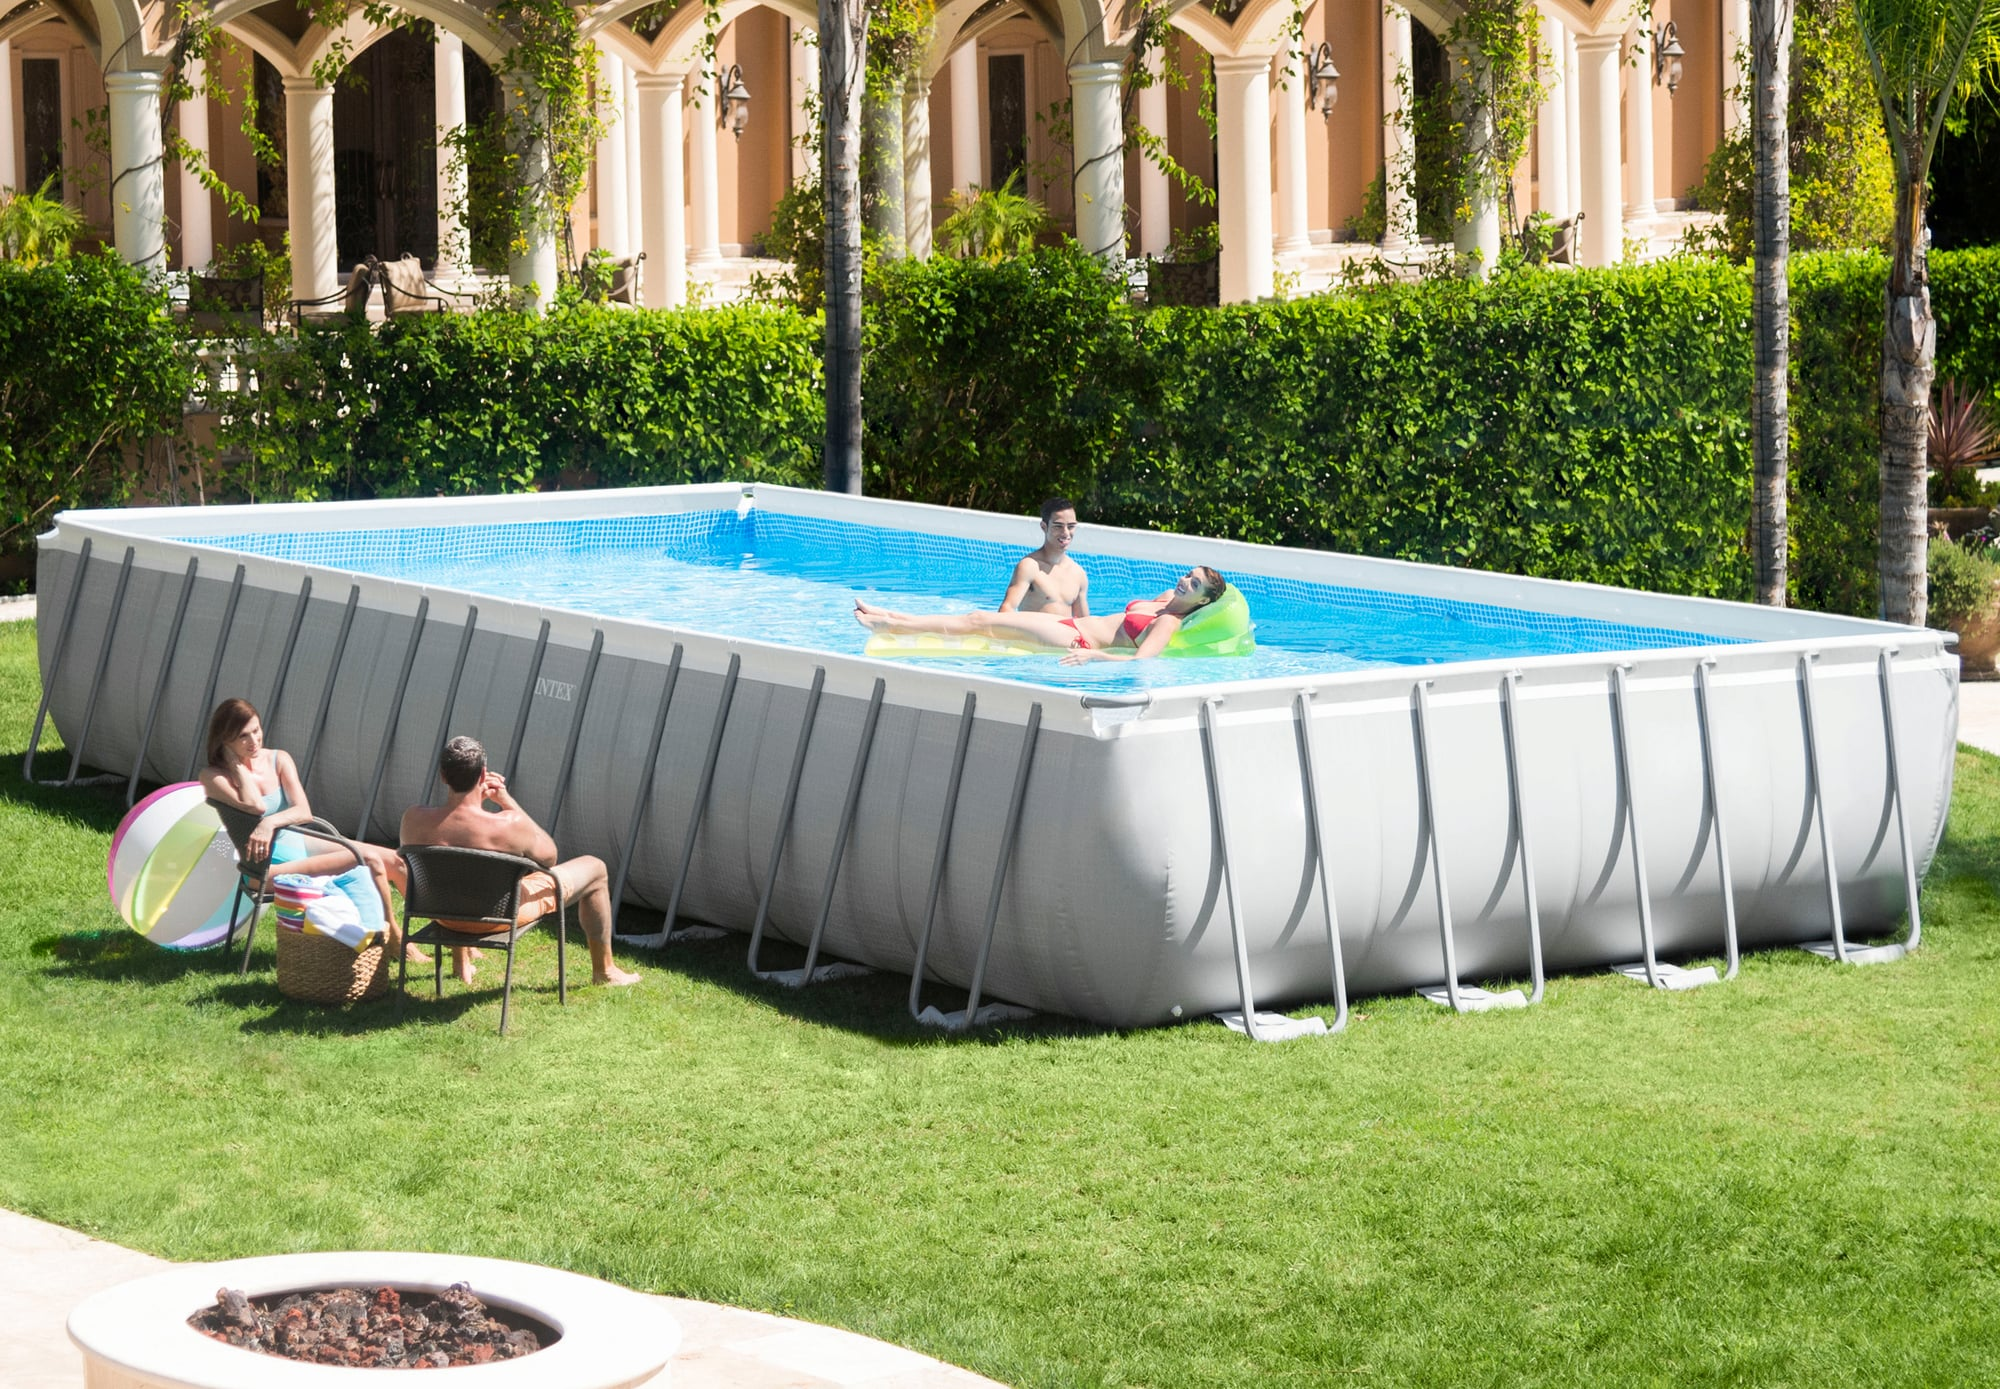 Pool Zubehör Aldi Intex Frame Pool Ultra Quadra 975 X 488 X 132 Cm 1 Set